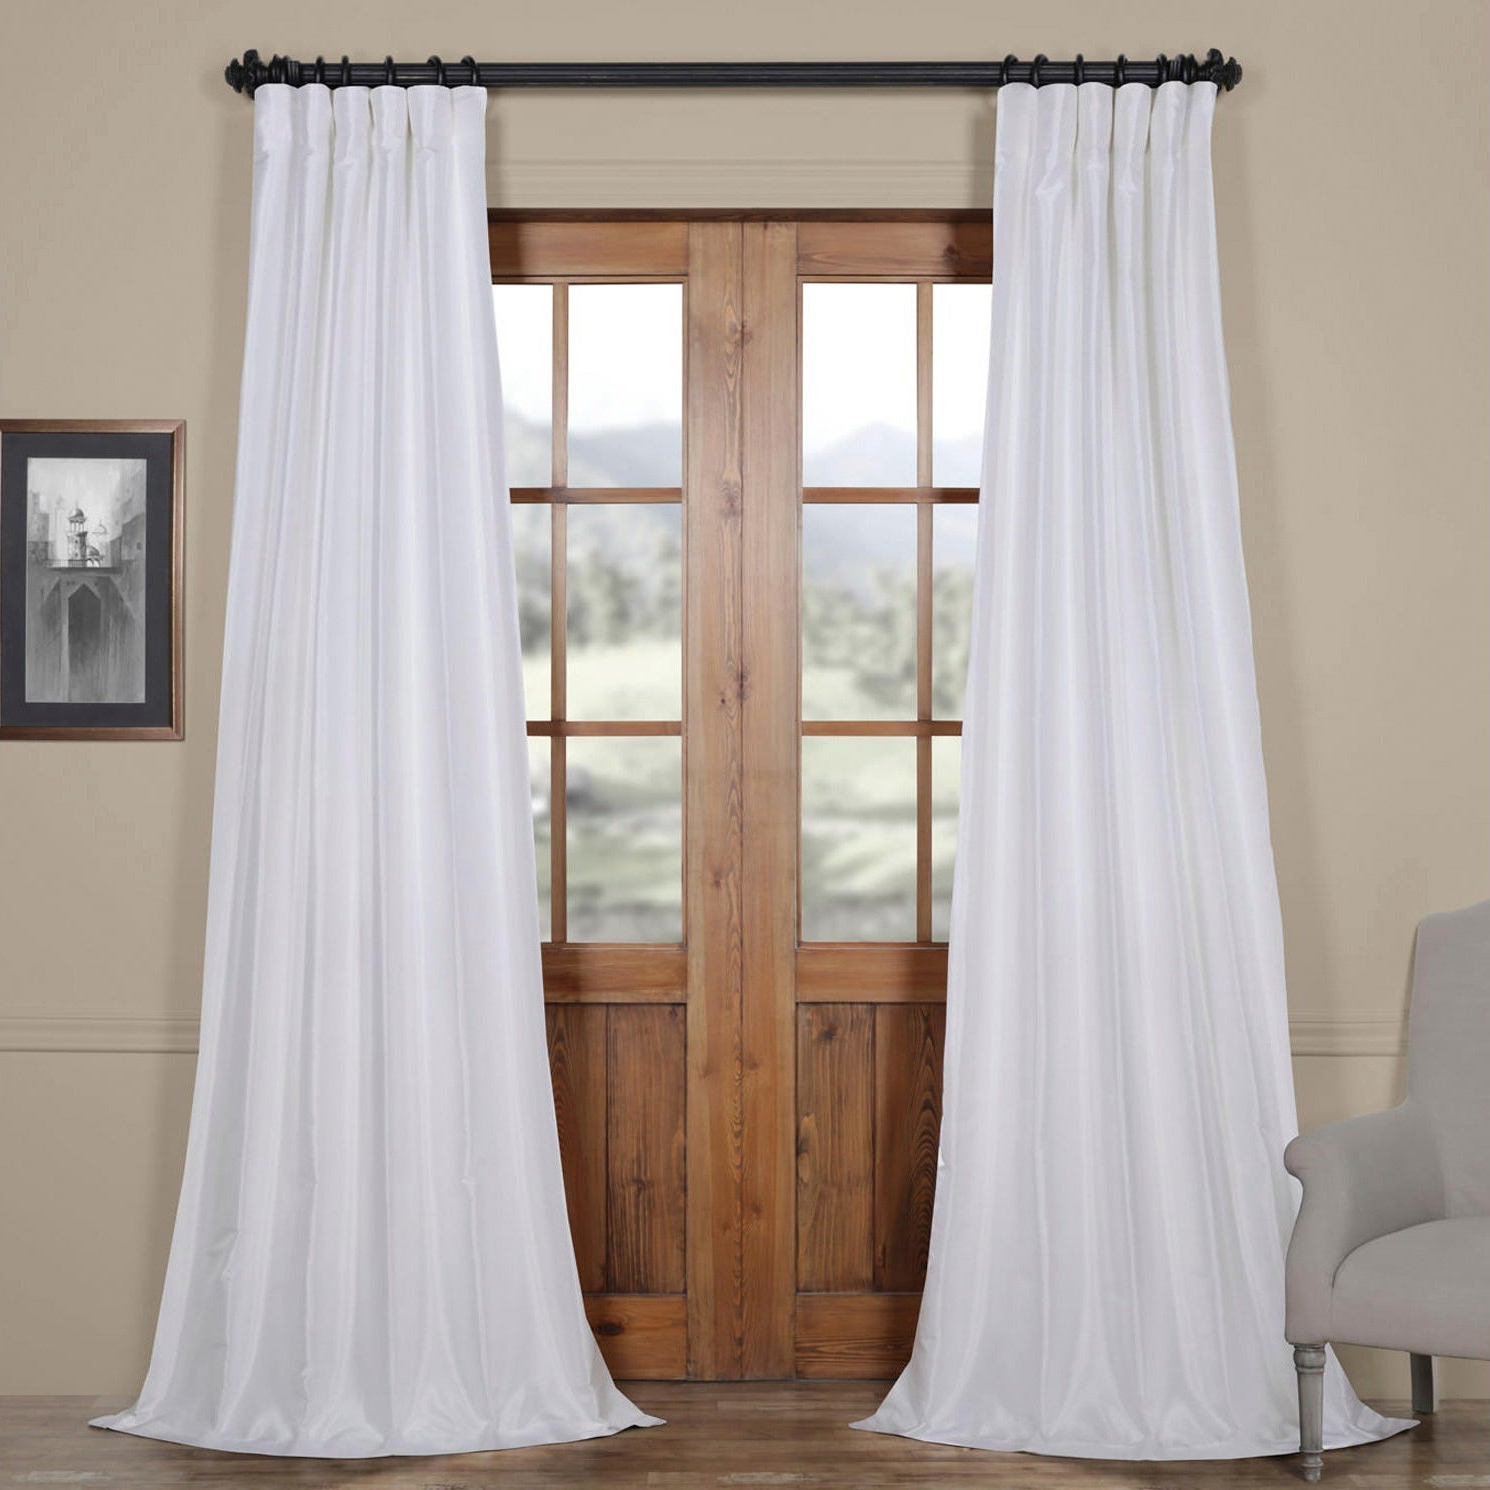 Famous Ice White Vintage Faux Textured Dupioni Silk 108L Curtain Panel With Regard To Off White Vintage Faux Textured Silk Curtains (Gallery 7 of 20)